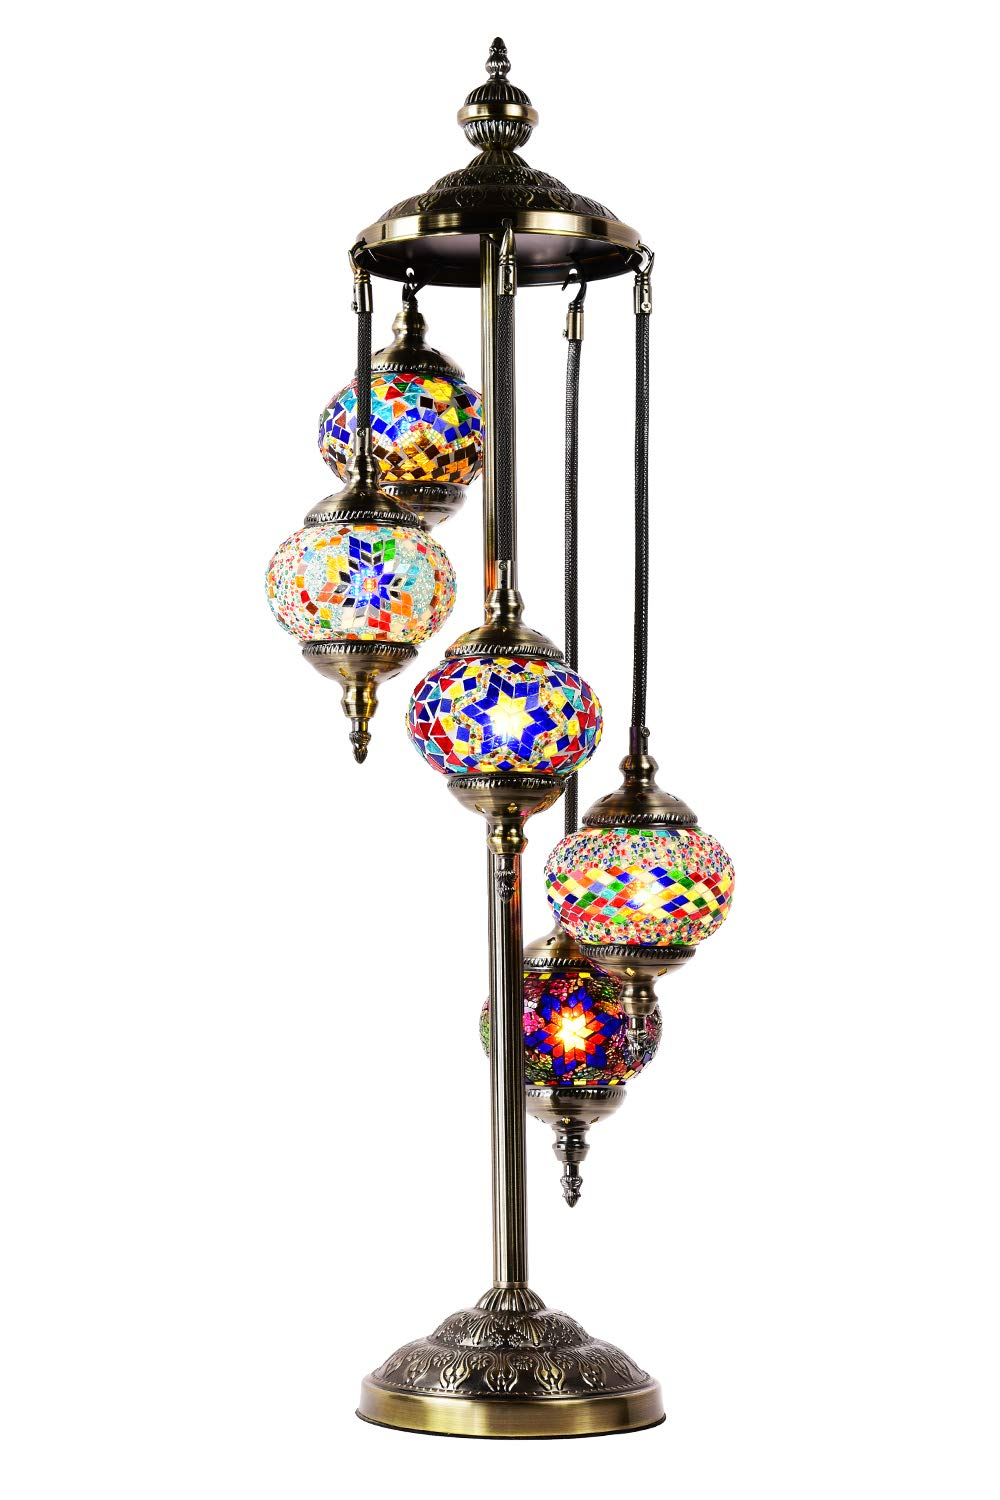 Marrakech Turkish Mosaic Floor Lamp 5 Globes Mosaic Glass Floor Lamp Moroccan Tiffany Style Lamp Decorative Night Light for Living Room Bedroom (Multi-Colored)